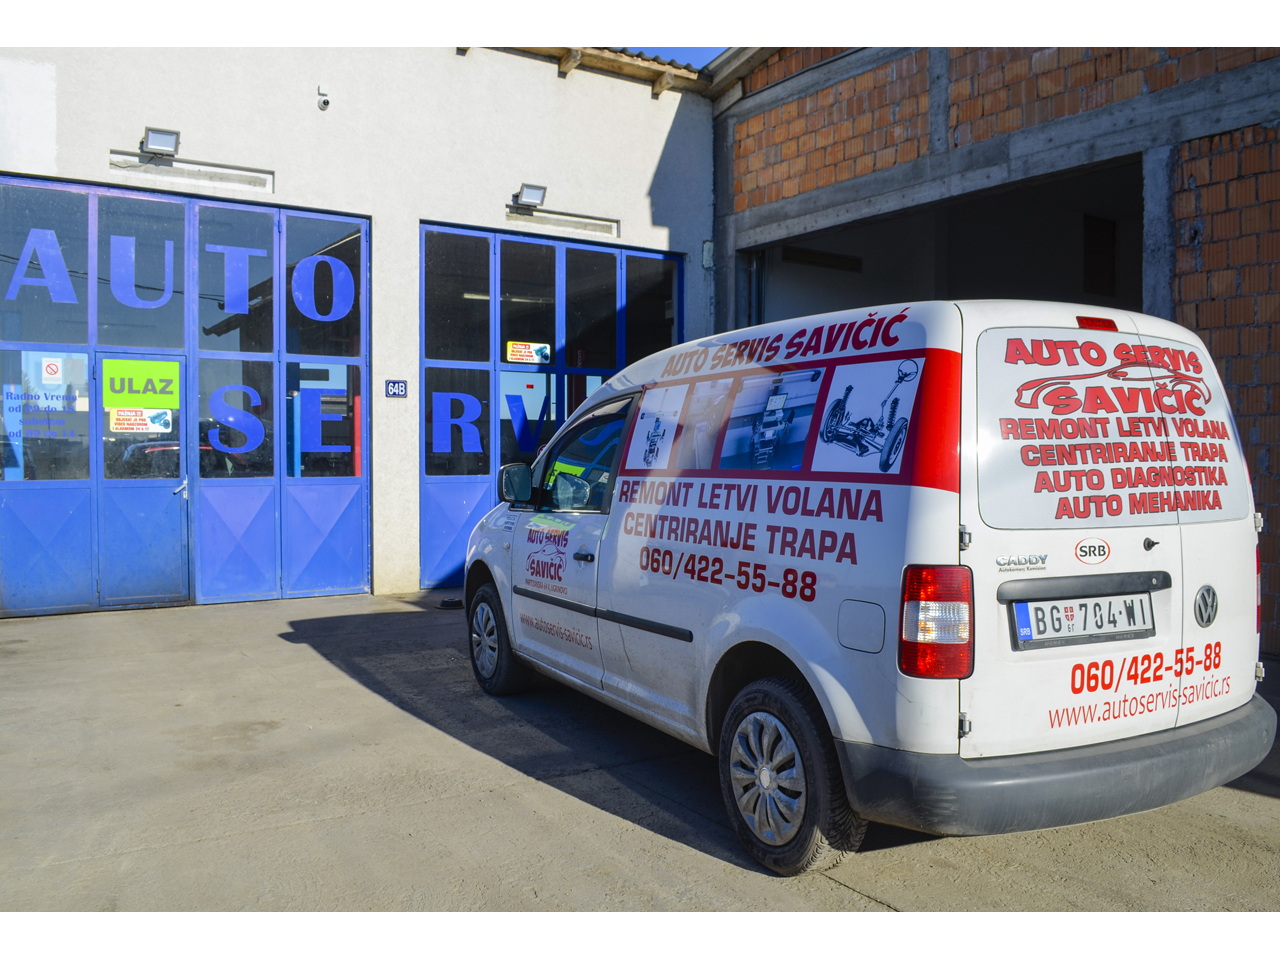 CAR SERVICE SAVICIC Replacement parts - Wholesale Beograd